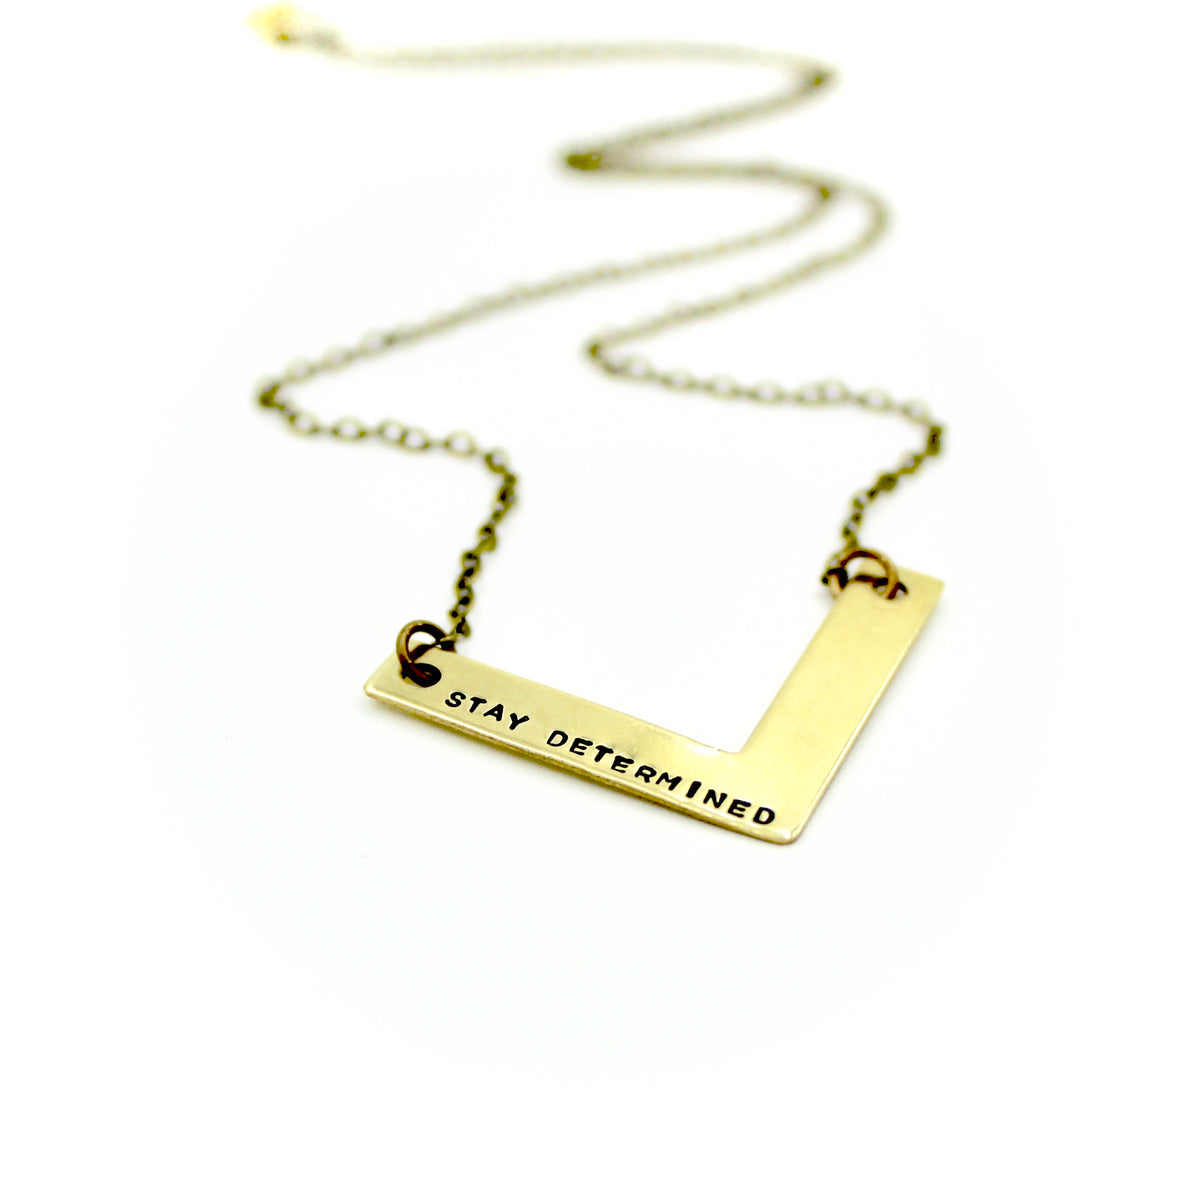 Stay Determined Necklace